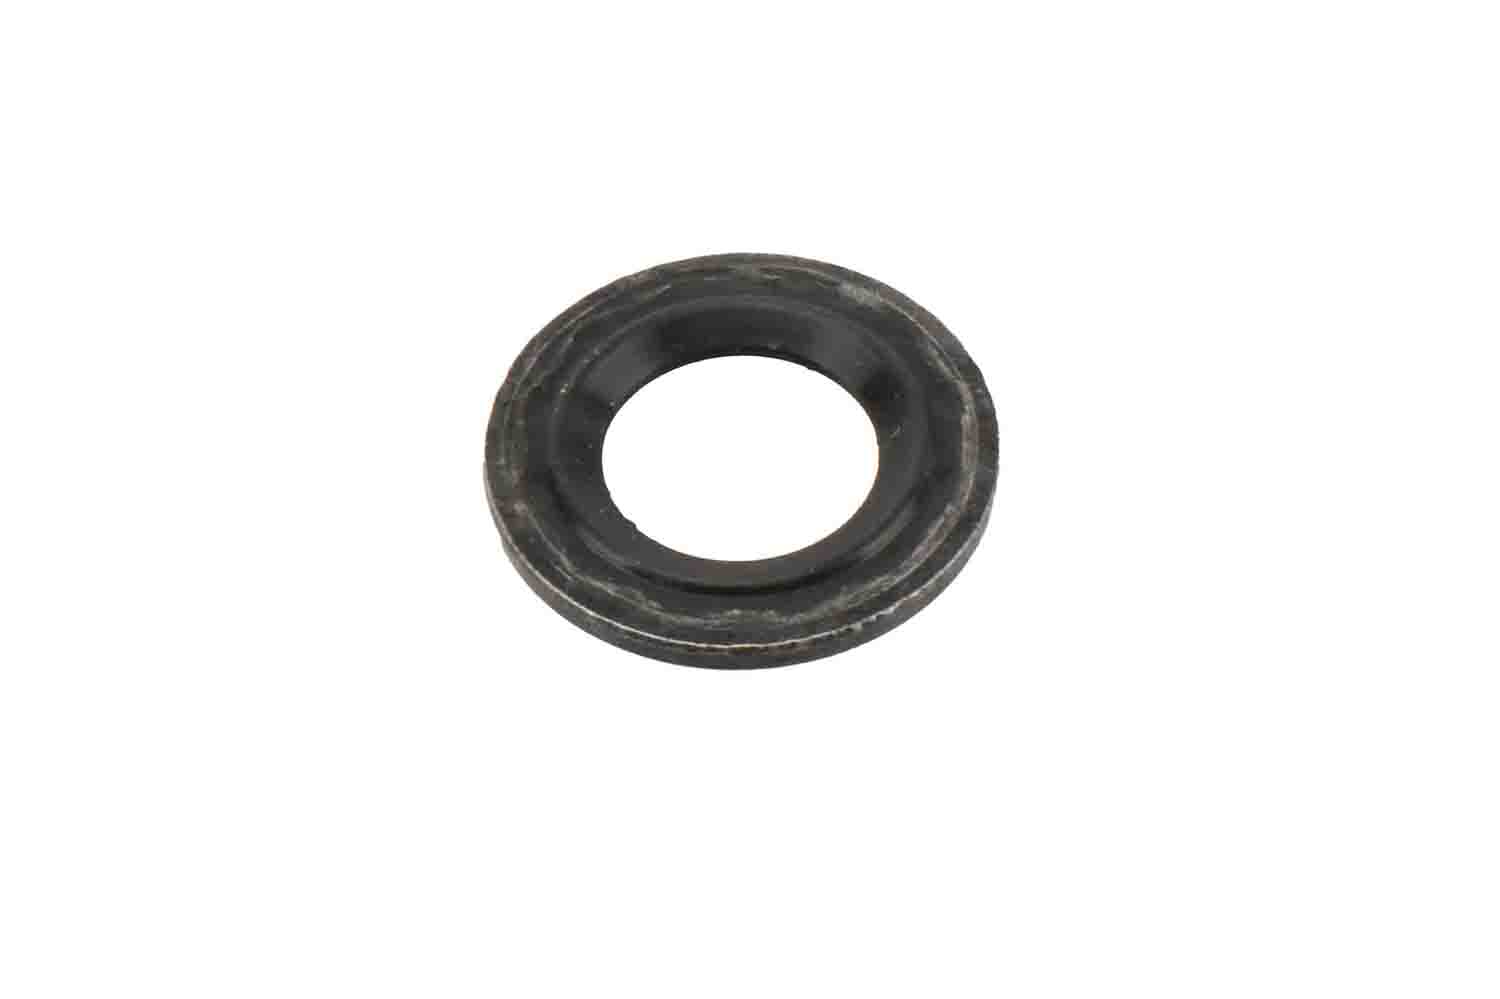 ACDELCO GM ORIGINAL EQUIPMENT - Automatic Transmission Oil Cooler Hose O-Ring - DCB 25874797